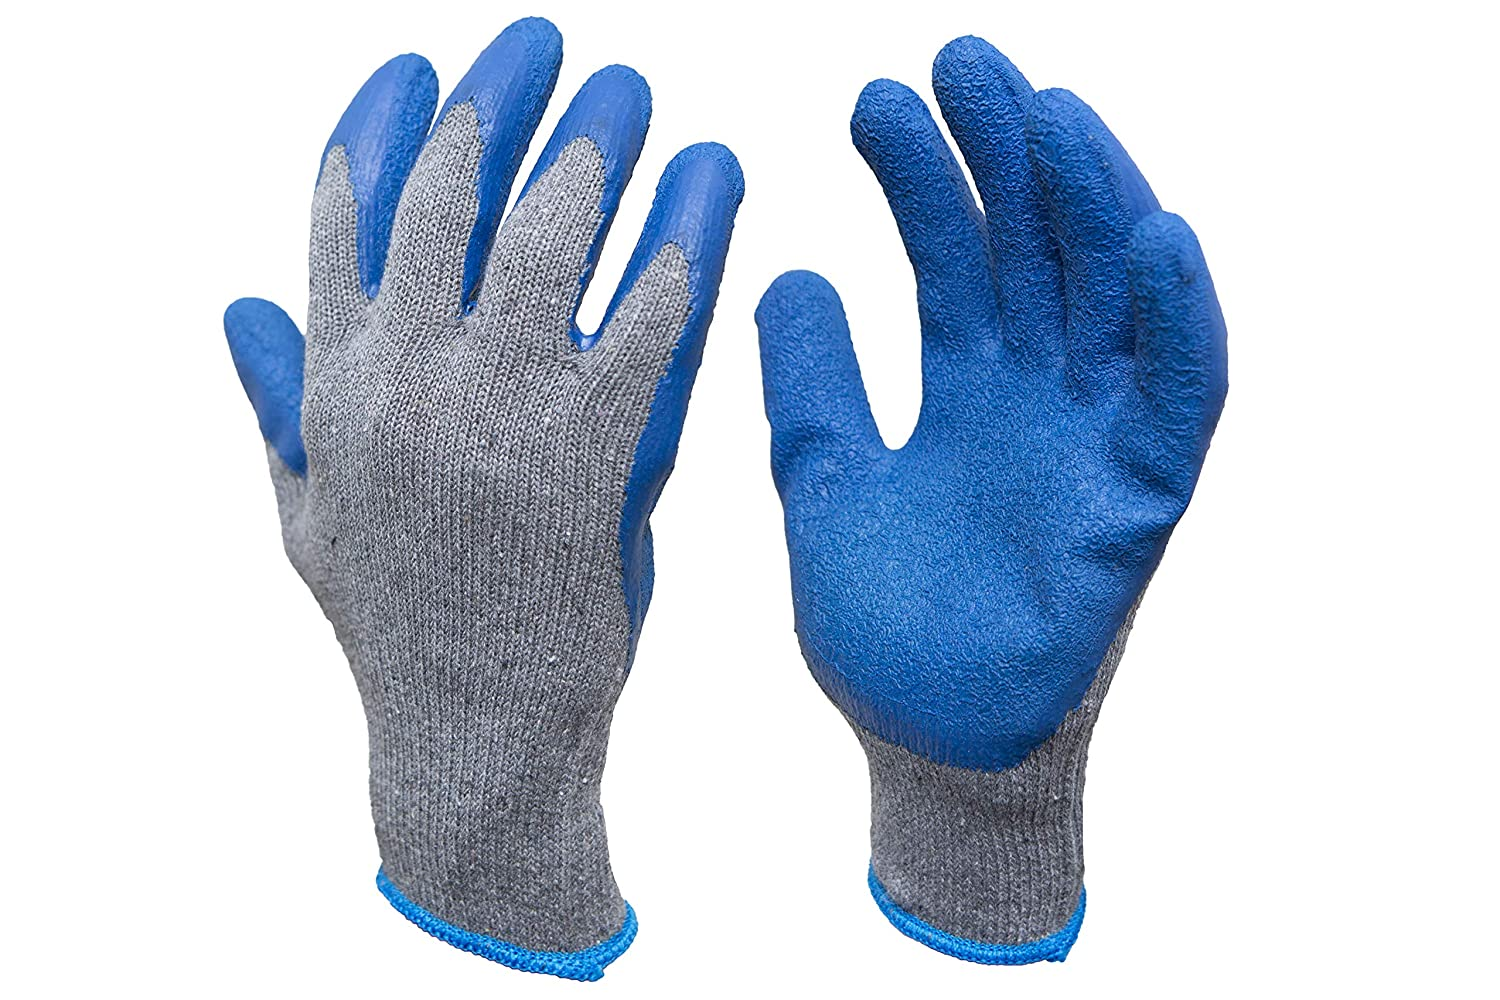 G & F 3100L-DZ Knit Work Gloves,Textured Rubber Latex Coated for Construction, 12-Pairs, Men's Large